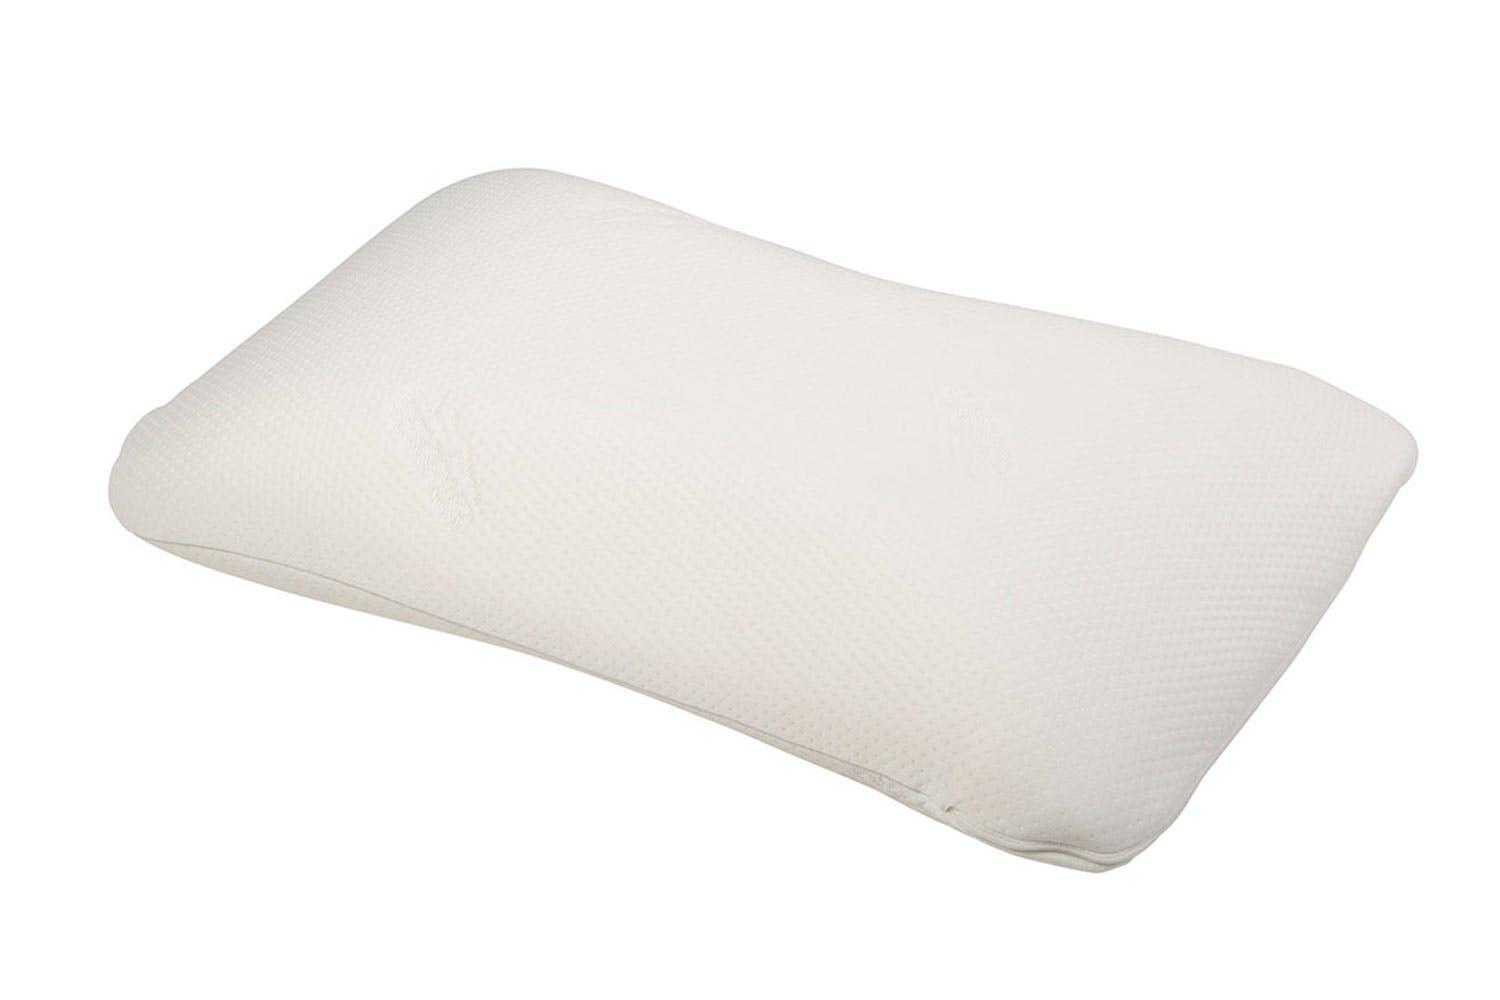 Symphony Pillow - Medium - Tempur